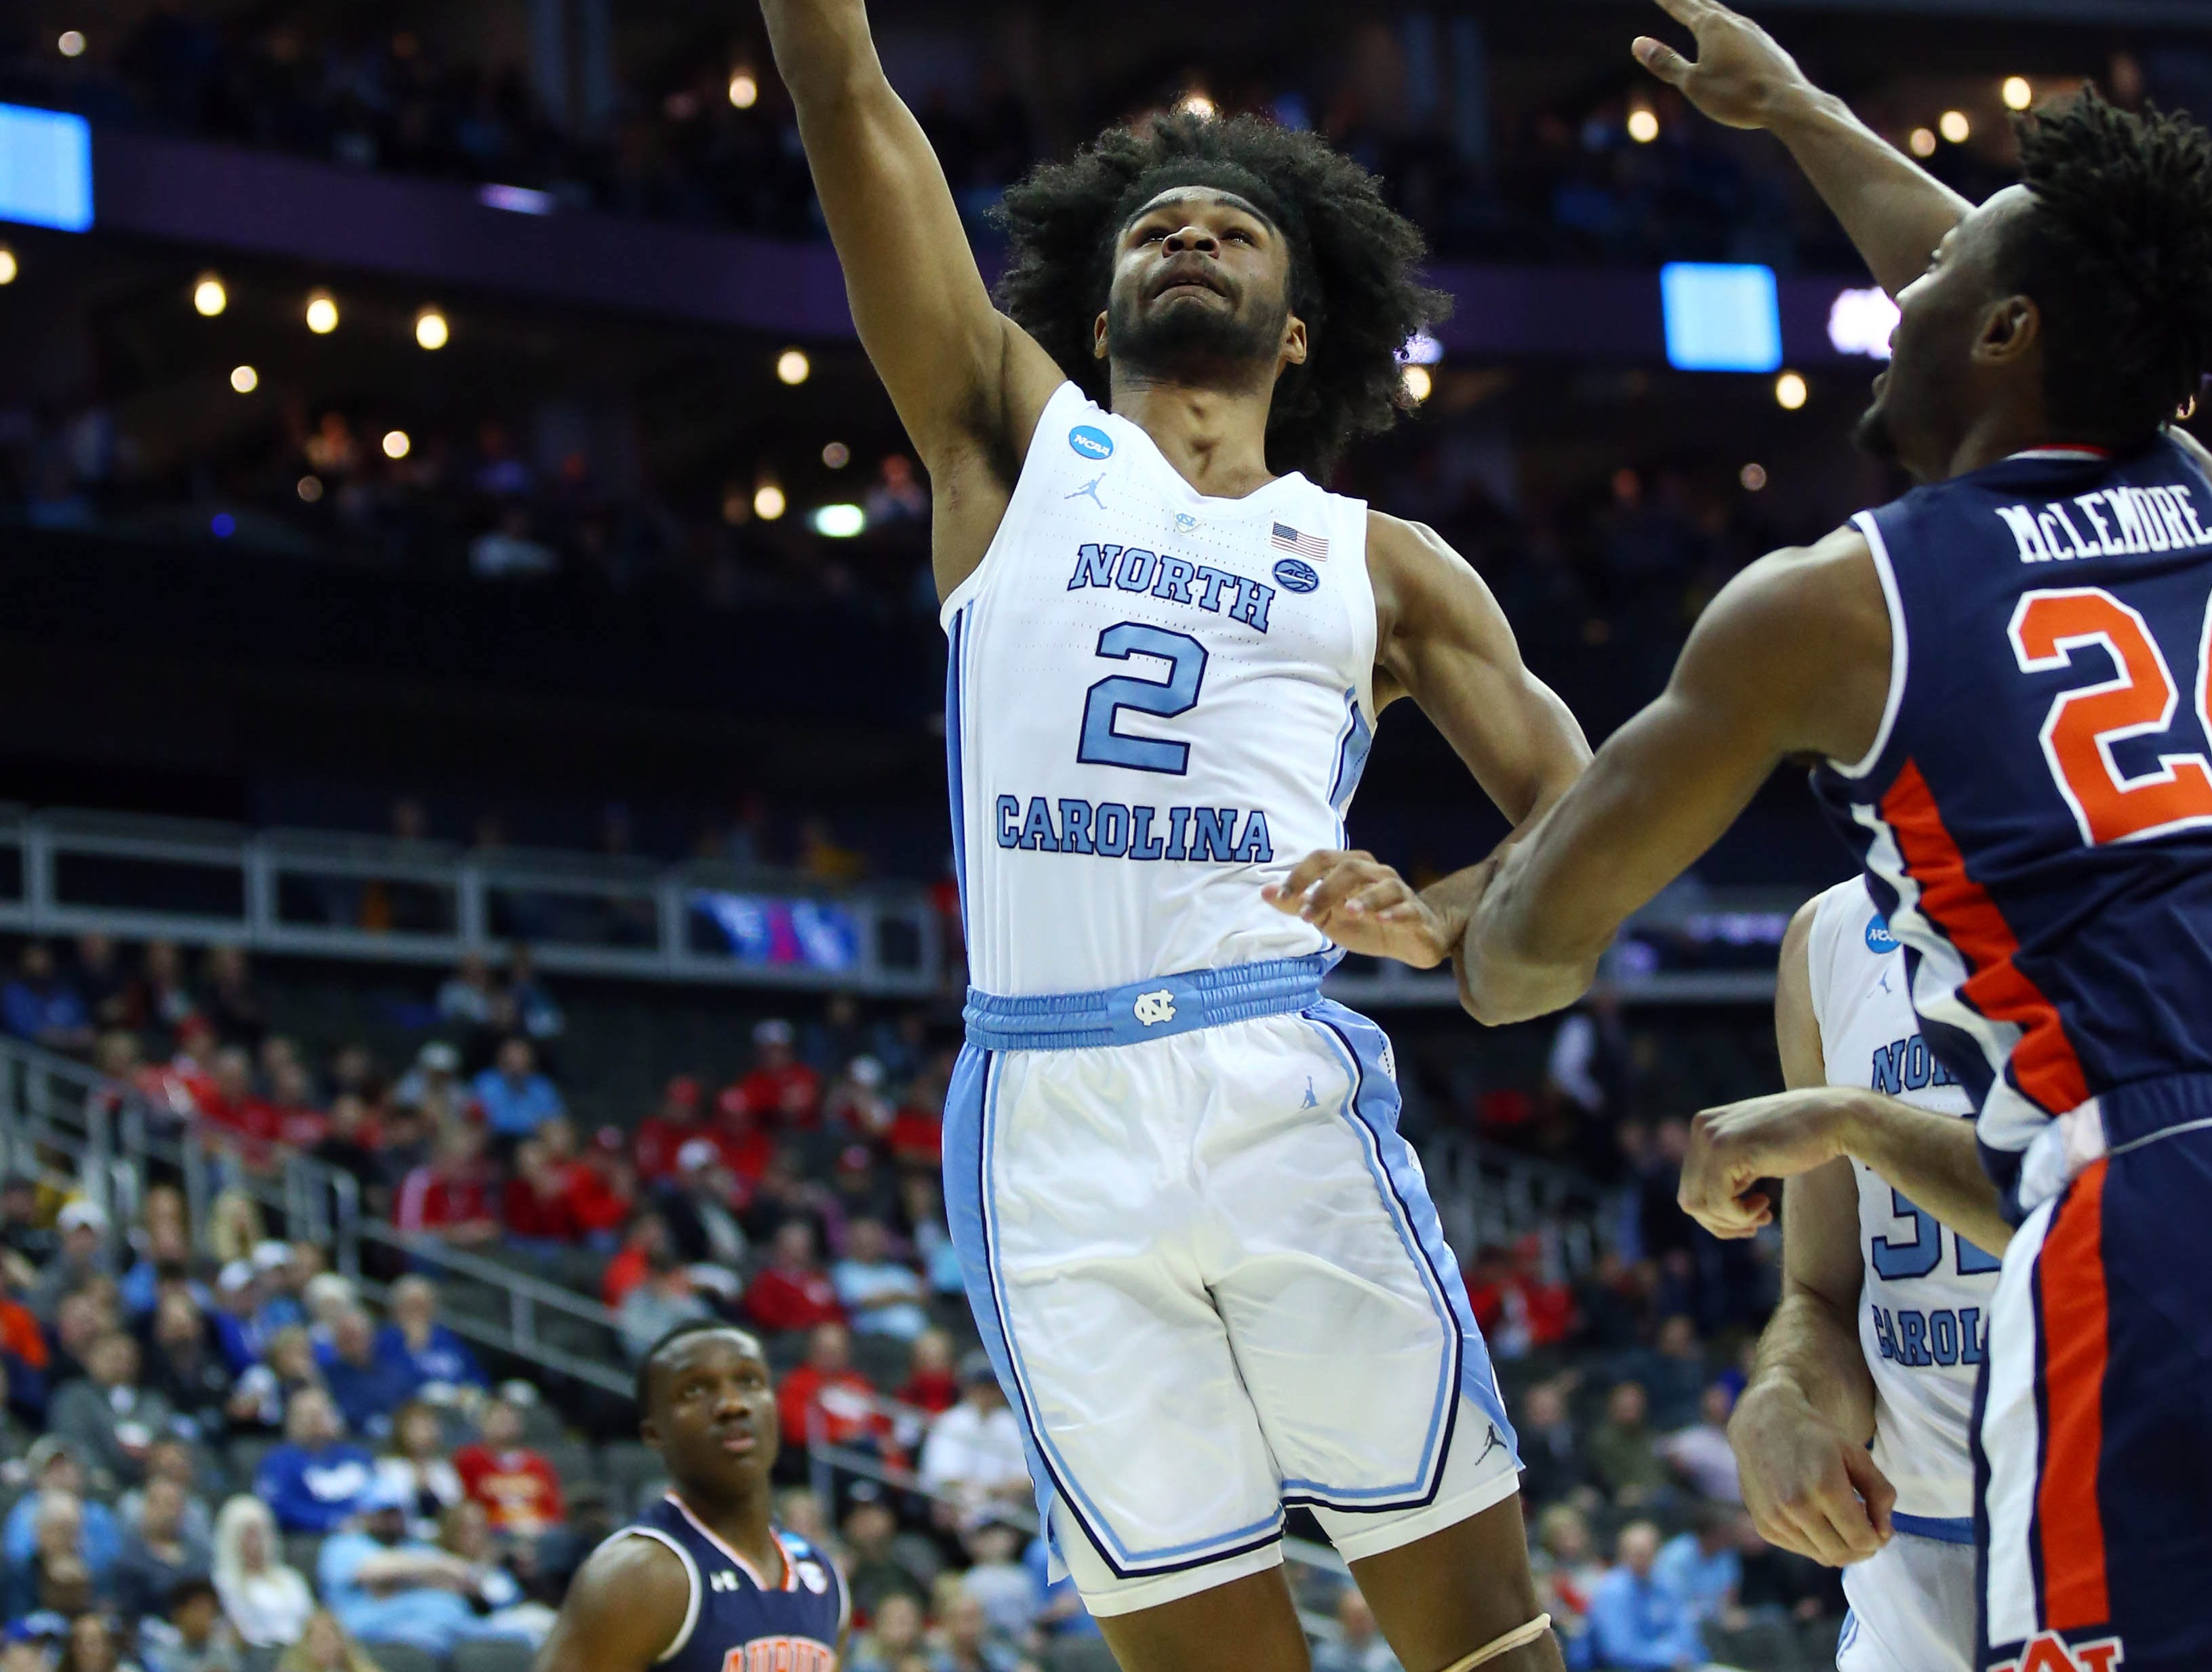 Mar 29, 2019; Kansas City, MO, United States; North Carolina Tar Heels guard Coby White (2) shoots against the Auburn Tigers during the first half in the semifinals of the midwest regional of the 2019 NCAA Tournament at Sprint Center. Mandatory Credit: Jay Biggerstaff-USA TODAY Sports